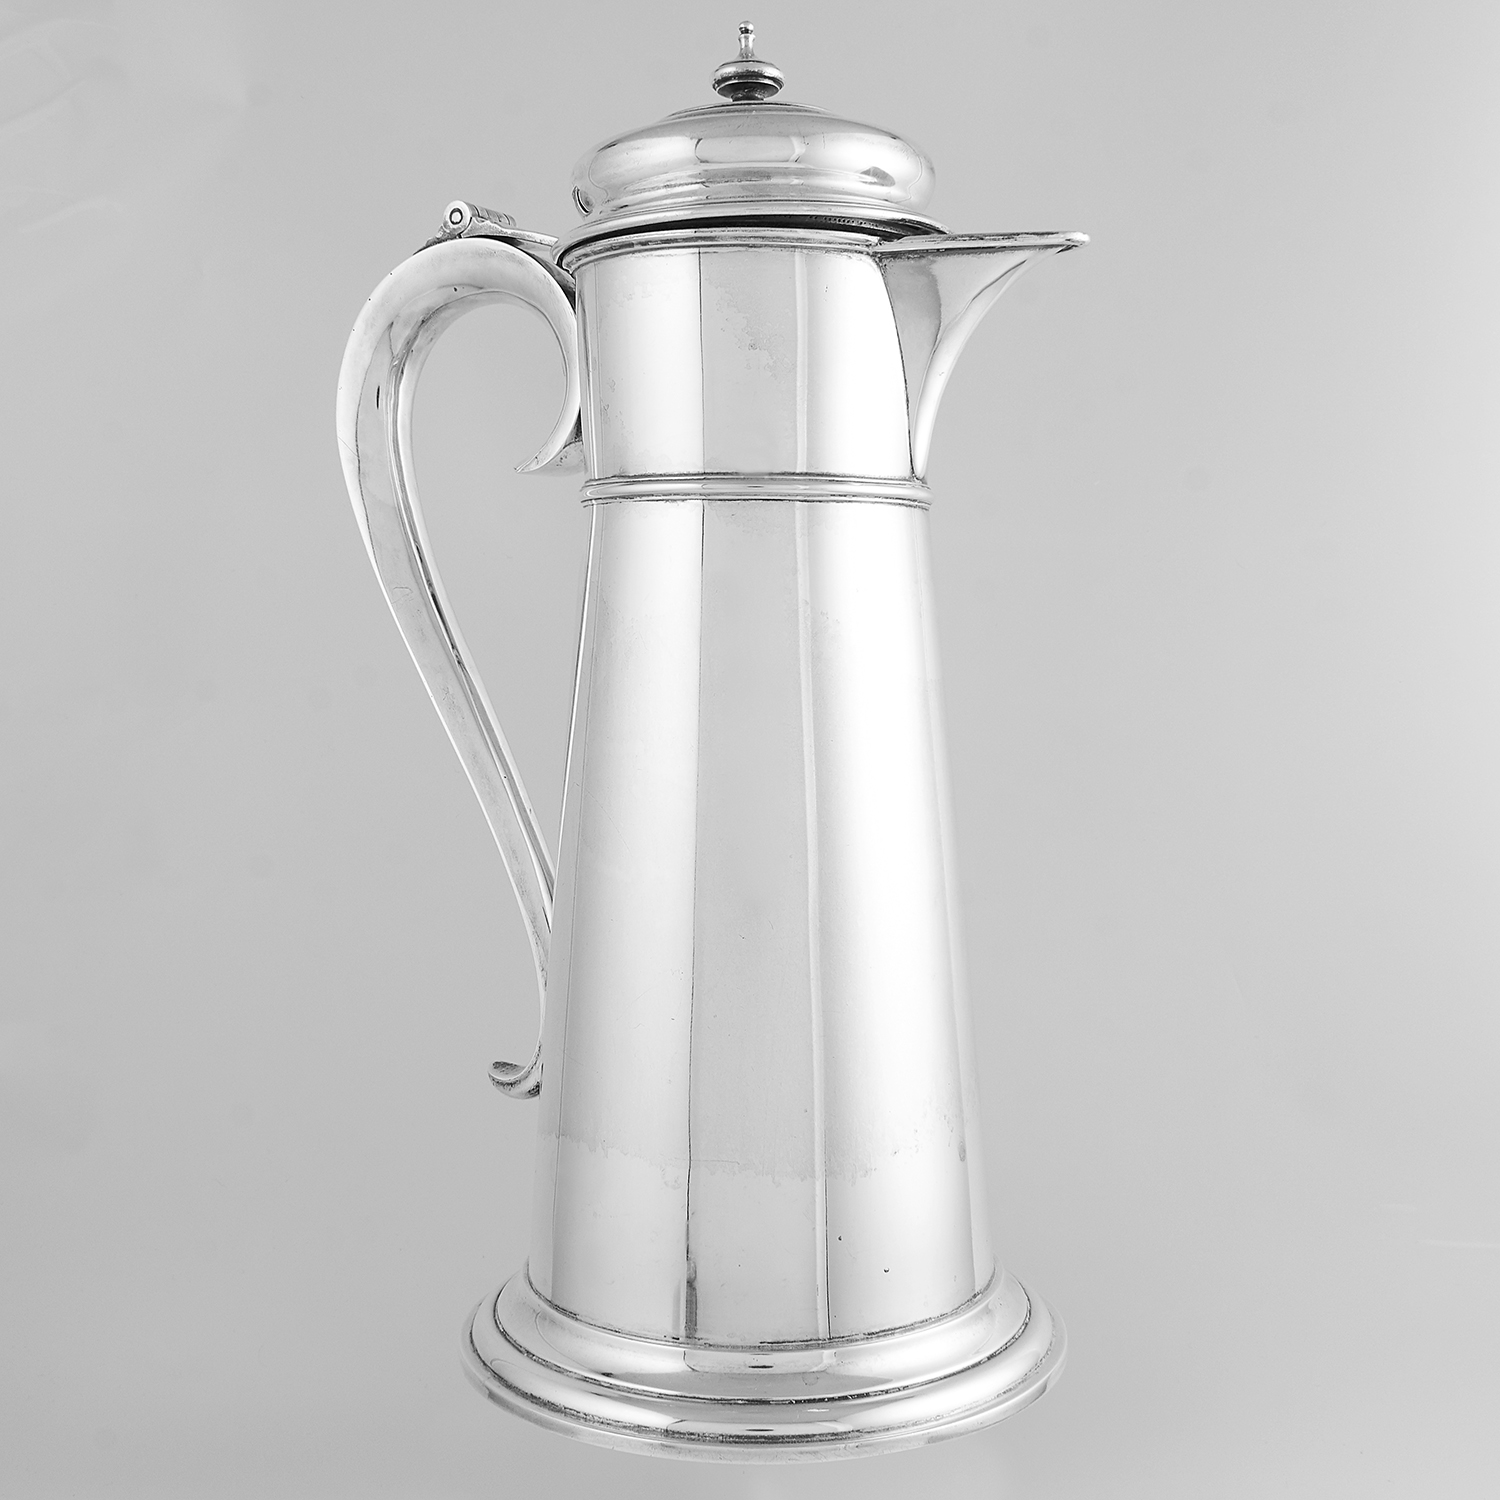 Los 56 - ANTIQUE AMERICAN STERLING SILVER COCKTAIL JUG CIRCA 1920 the tapering body with scrolling handle and